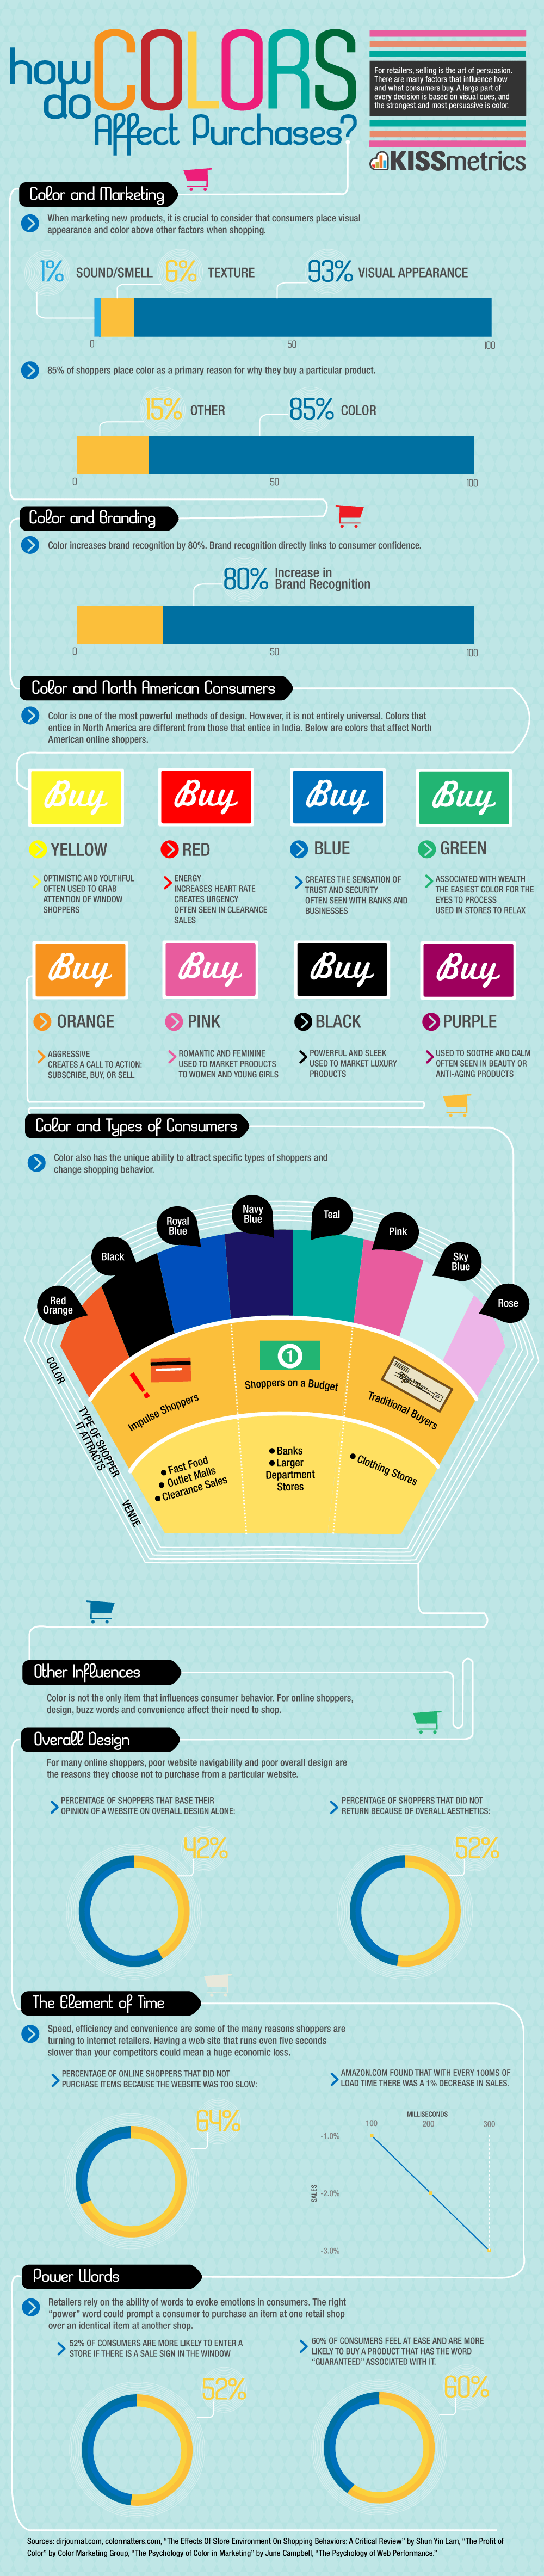 how colors affect purchases an infographic